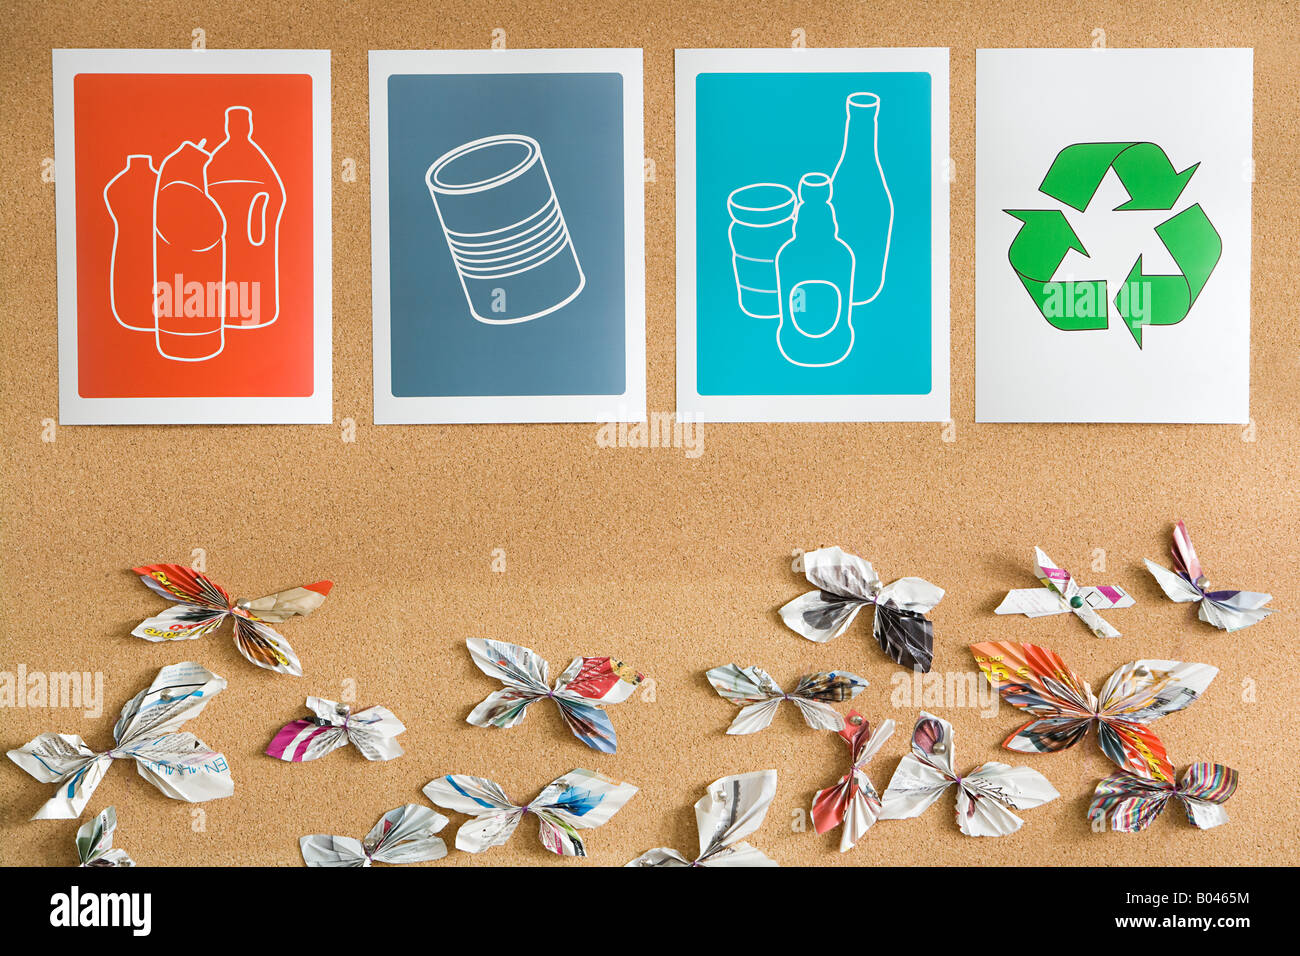 Recycling illustrations - Stock Image